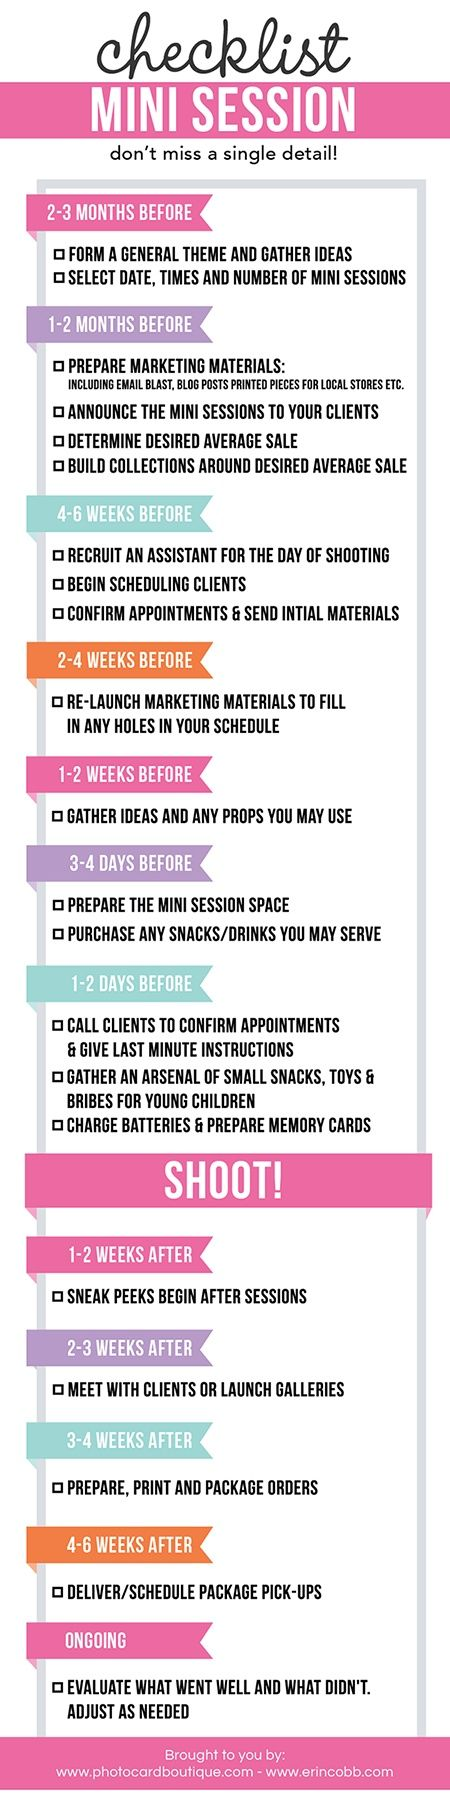 My checklist is a little different, but this is a great foundation to make it your own! :) -Elle